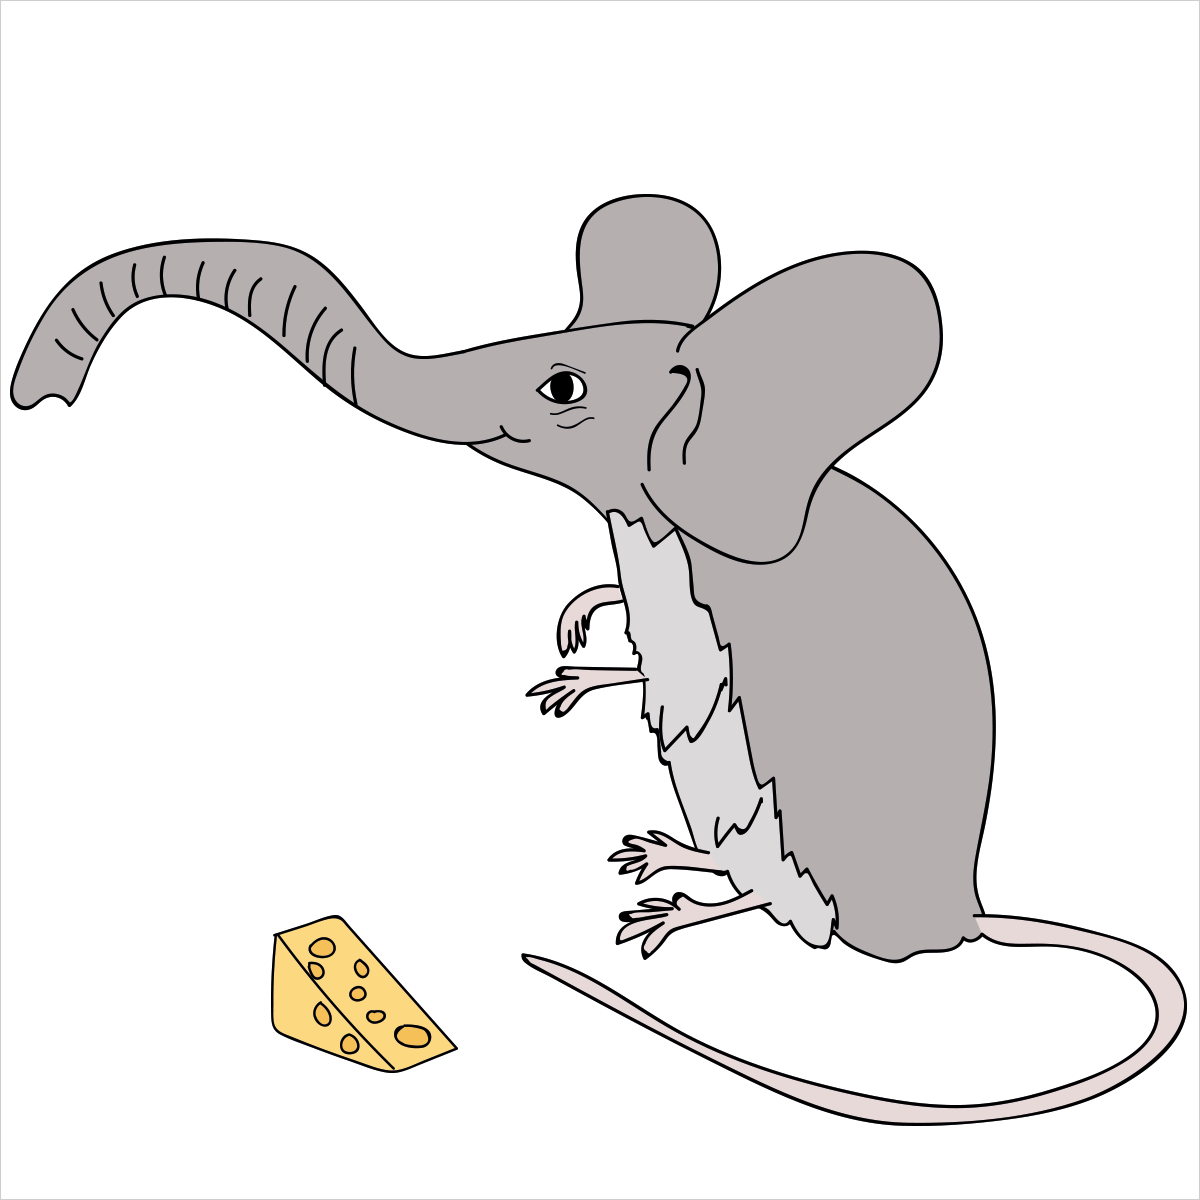 She's the largest and most social land animal on Earth with her large, powerful trunk but be mindful, she is timid and feels uncomfortable when exposed. She is ELEPHANTMOUSE.